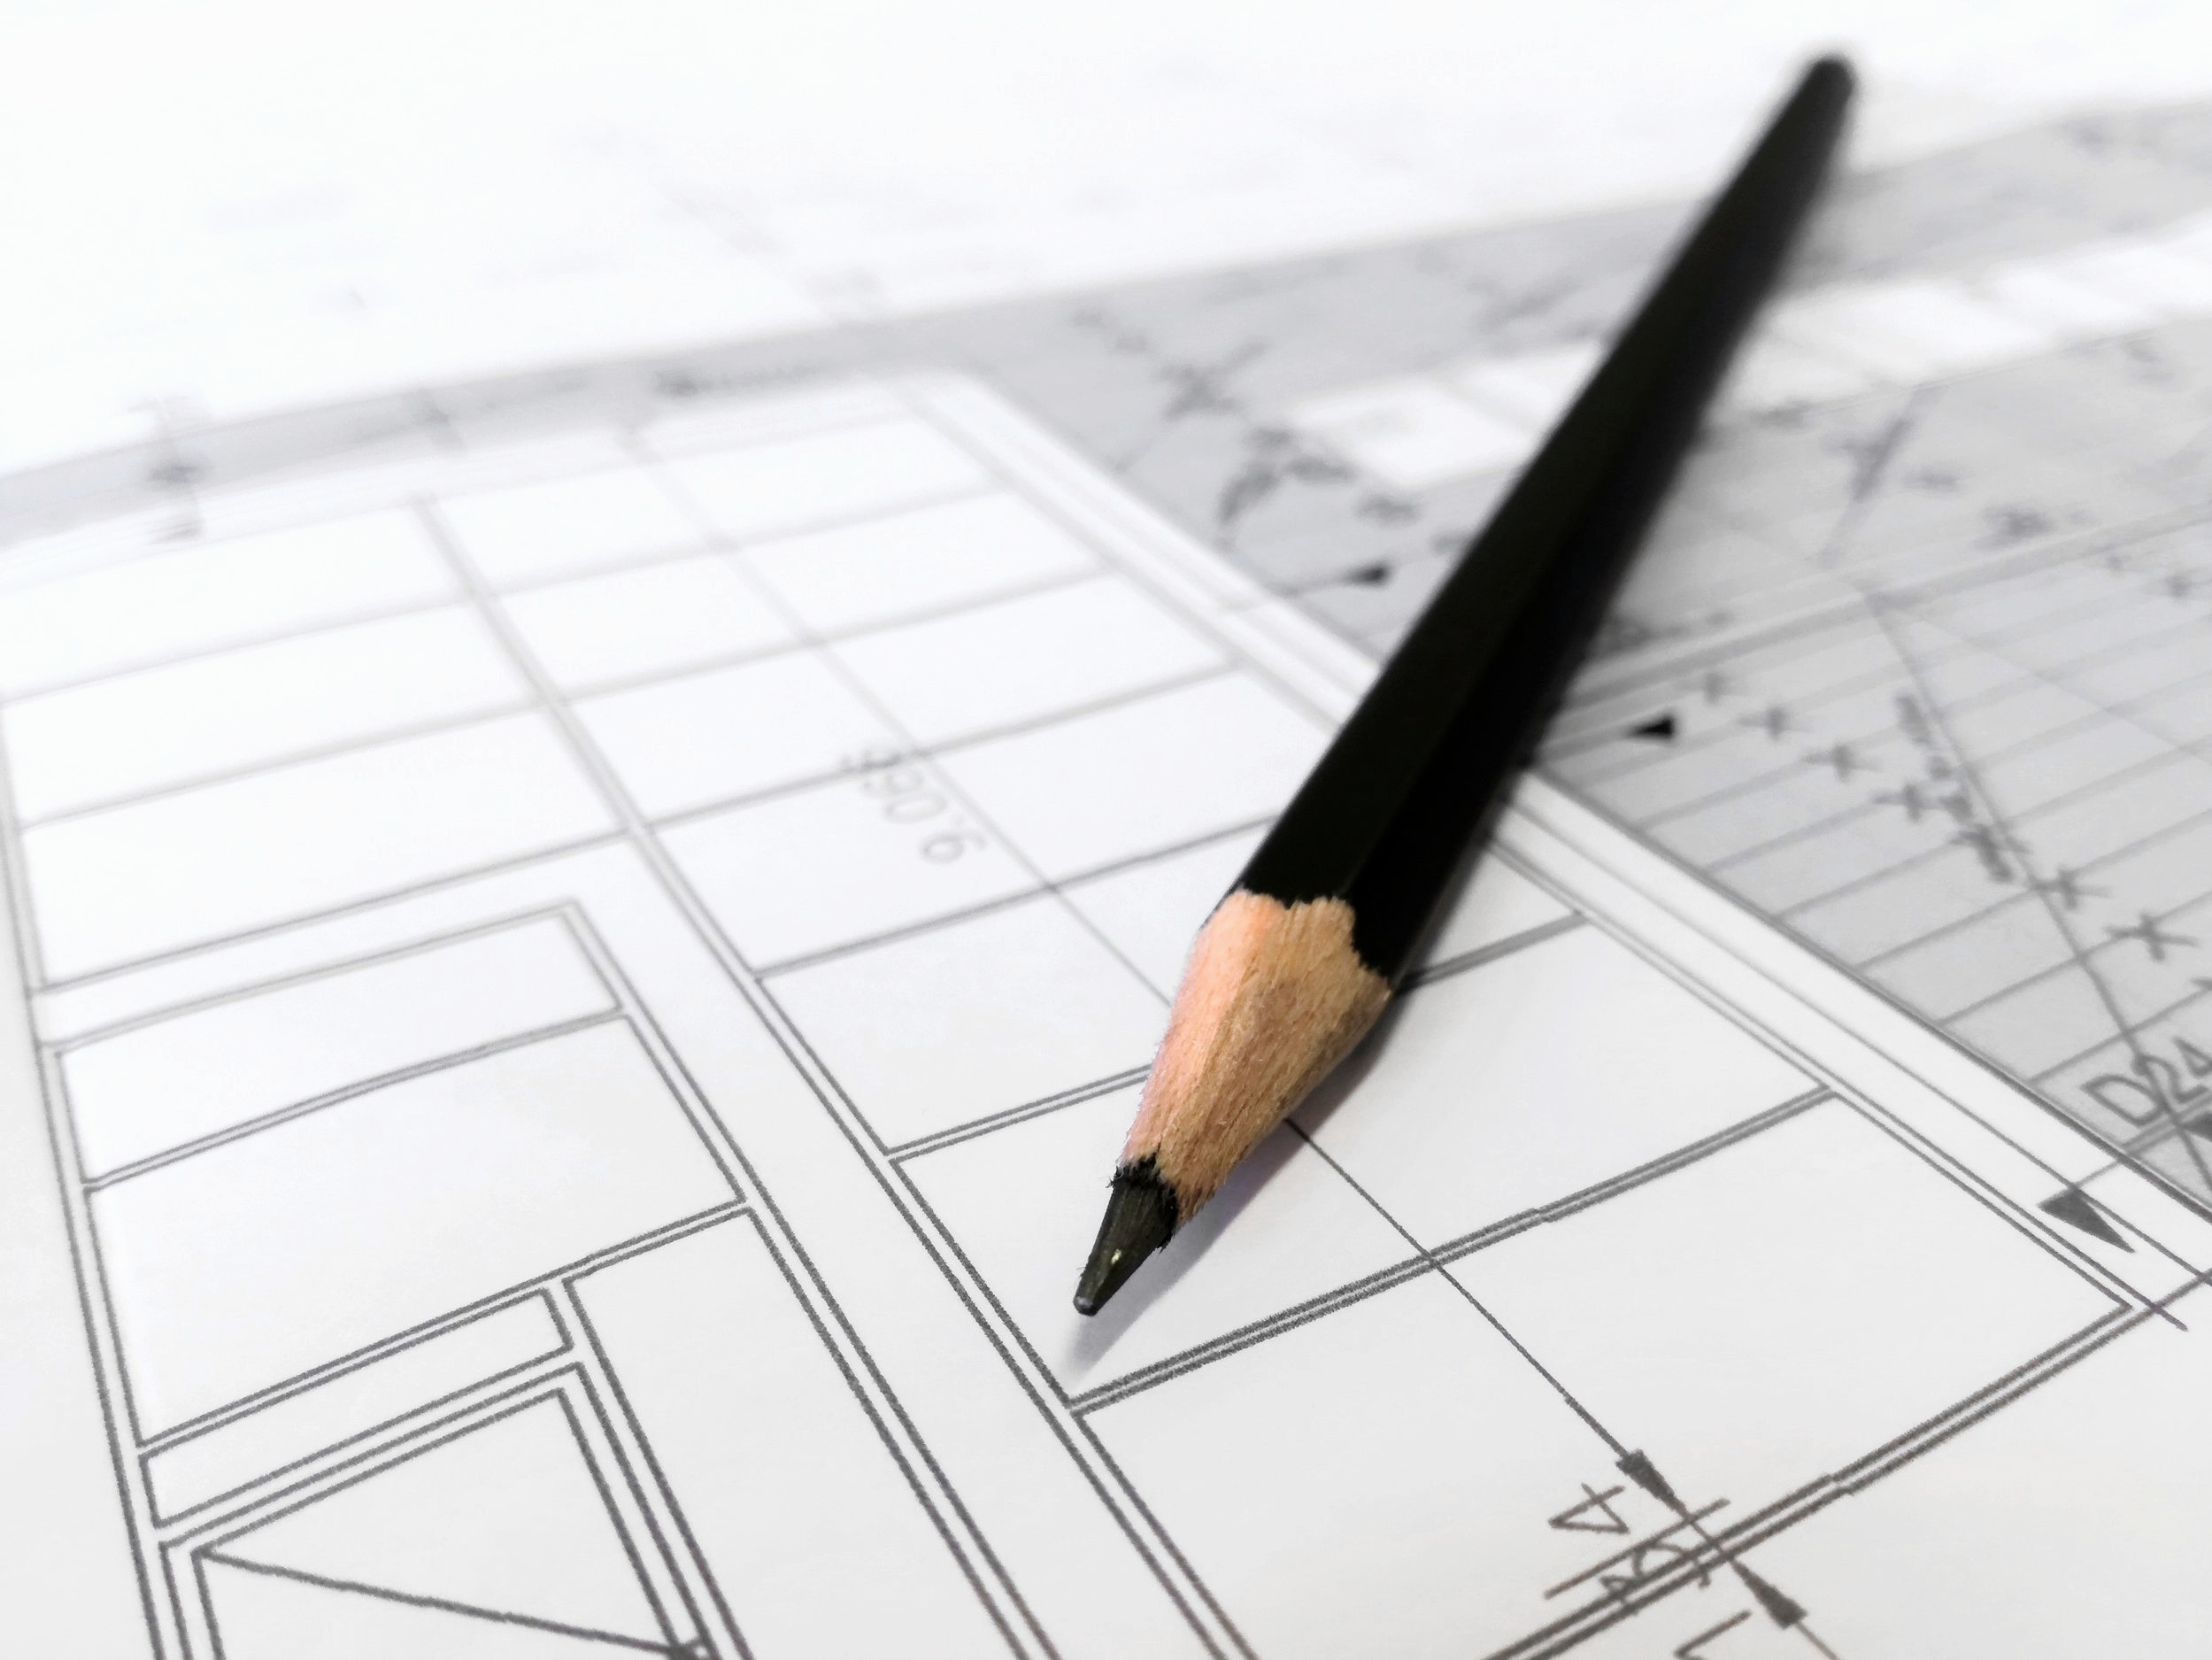 2. Site Survey & Estimate - At the end of our phone consultation, we will schedule an appointment for one of our specialists to come to your location to assess a variety of specific details about your project. Once we have gathered the necessary information, we will check with any necessary suppliers to provide you with an accurate quote of anticipated costs, often with different options to choose from.